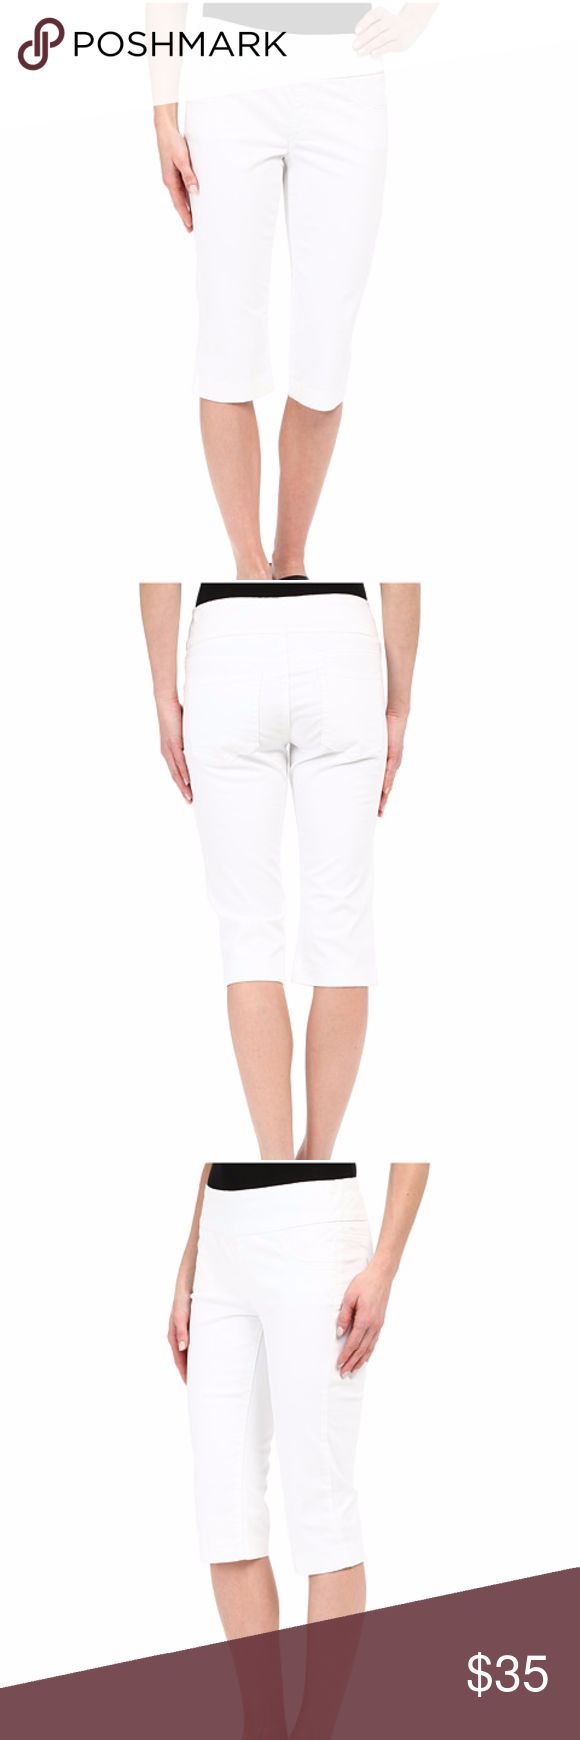 """Miraclebody Jeans Rudy 17"""" Cuffed Sateen Shorts Look 10 lbs. lighter in 10 seconds in a Miraclebody® short. Pull-on short features a fitted leg with cuffed opening. Hand-crafted canvas Miracle panel holds in the tummy for a trim silhouette. Soft and stretchy sateen fabric. Higher rise hits at the navel. Back pockets. Faux front pockets. 98% cotton, 2% spandex. Machine wash cold, tumble dry low. Imported. Measurements: Outseam: 25 in Inseam: 17 in Front Rise: 9 in Back Rise: 14 in Leg…"""